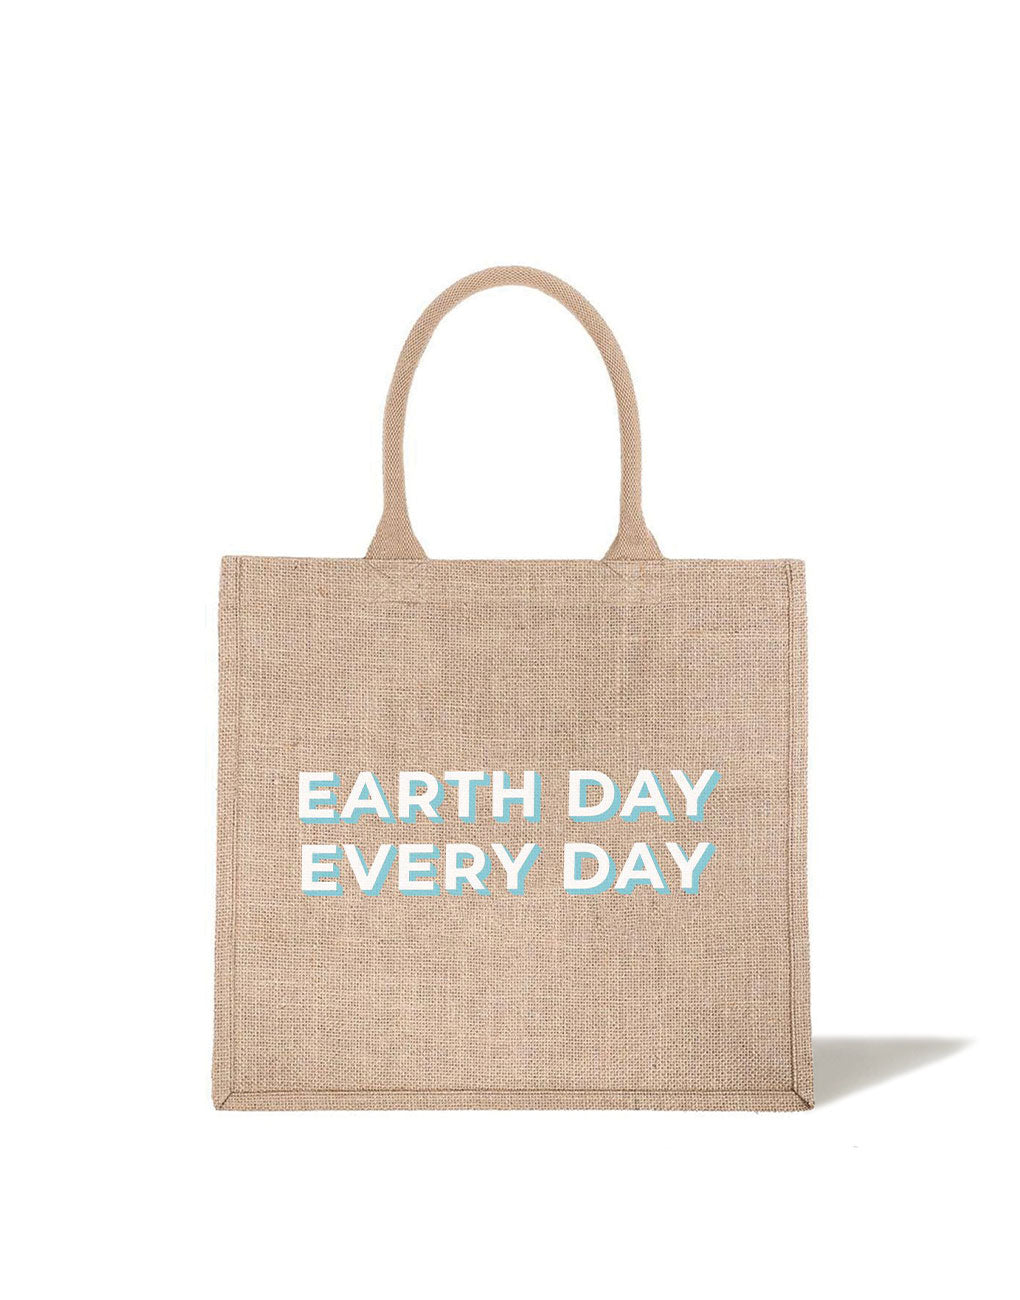 Shopping Tote - Earth Day, Every Day | The Little Market